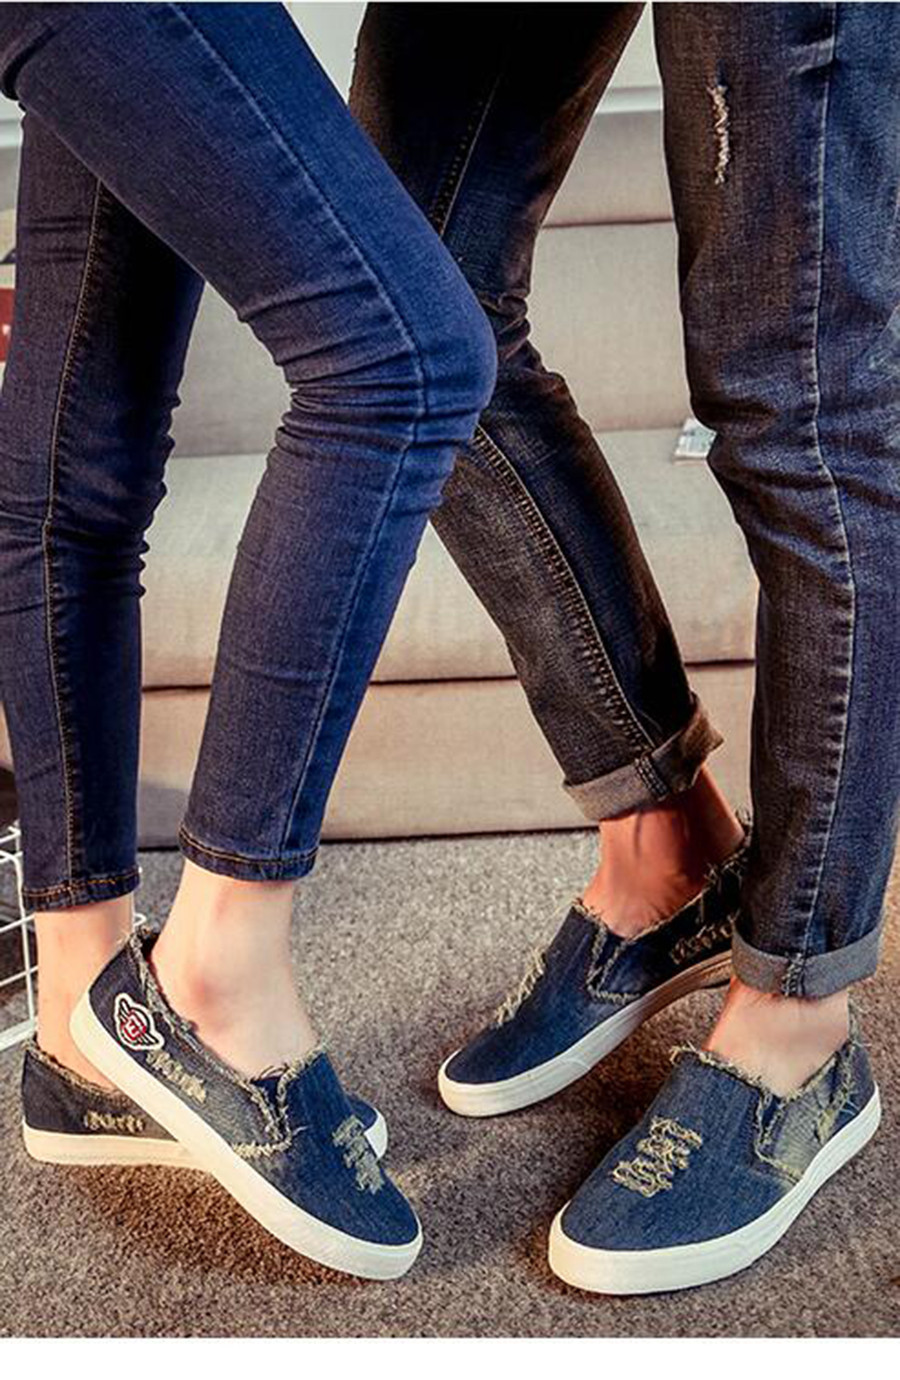 2017 washing women's denim shoes summer ventilation hole lazy flat sapatos women canvas shoe outdoor loafers size 40 blue